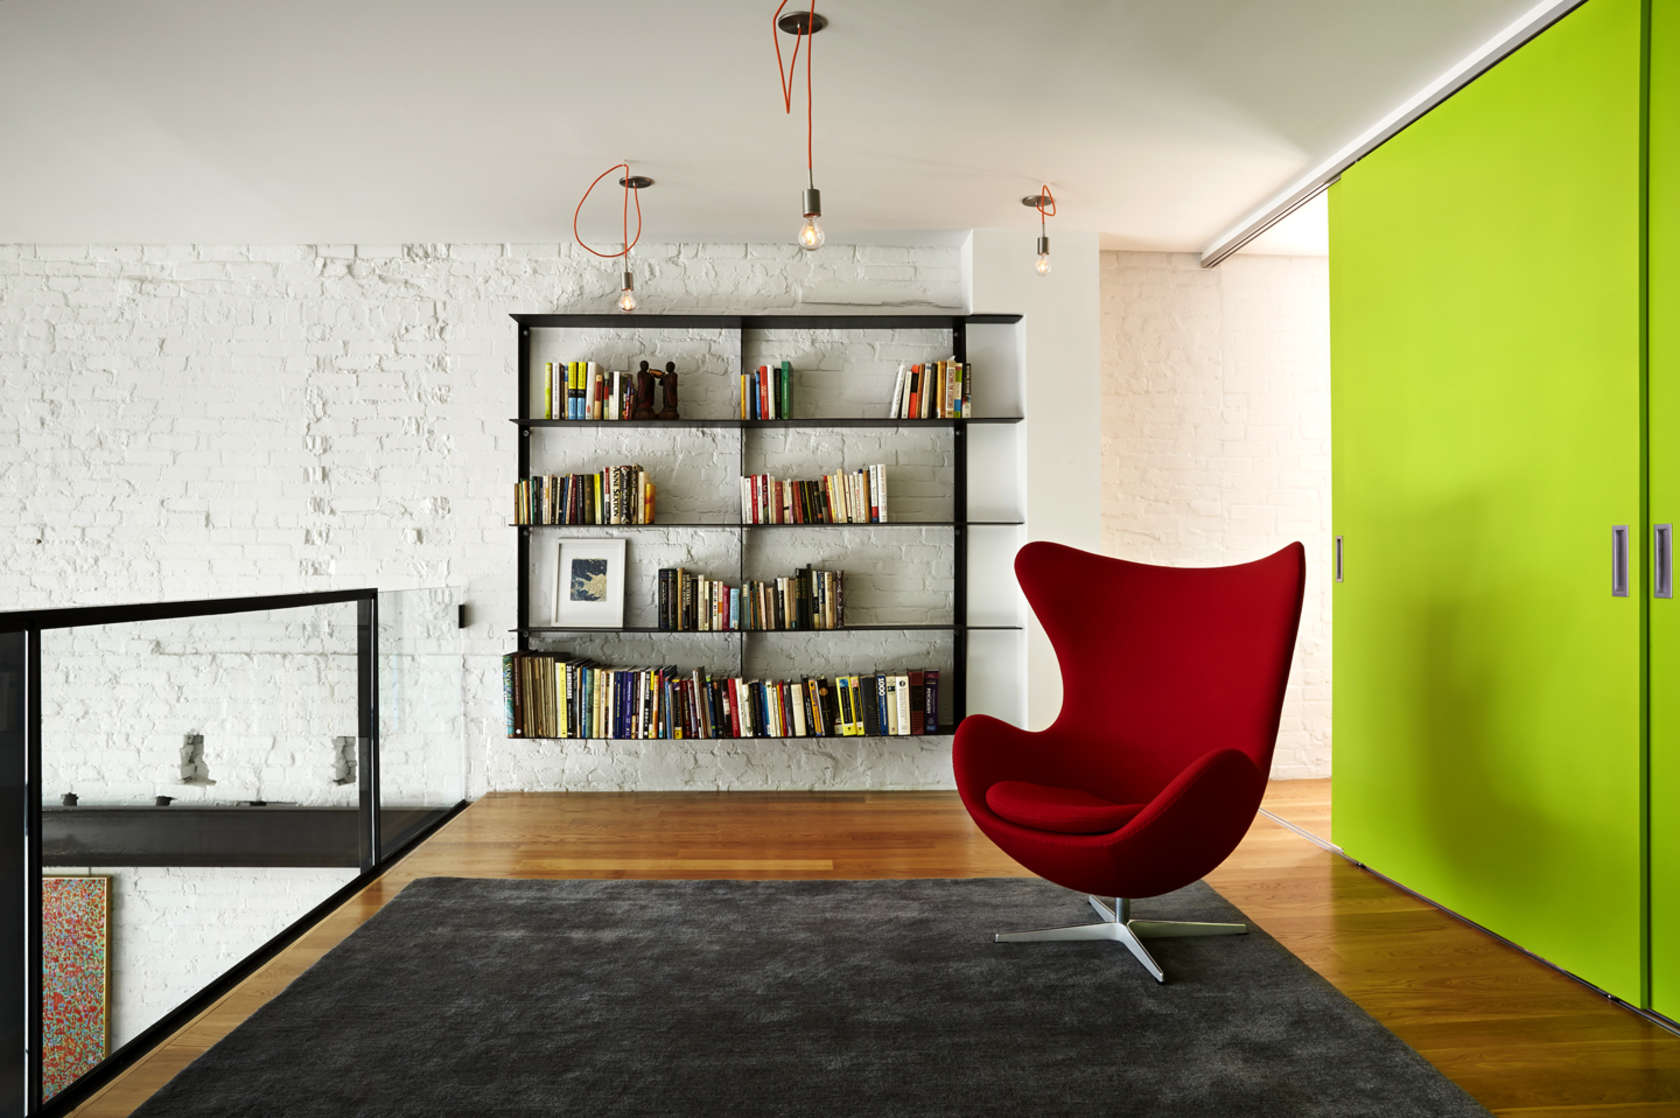 Red Egg Chair - A modern row house for a fun couple with a love of cooking